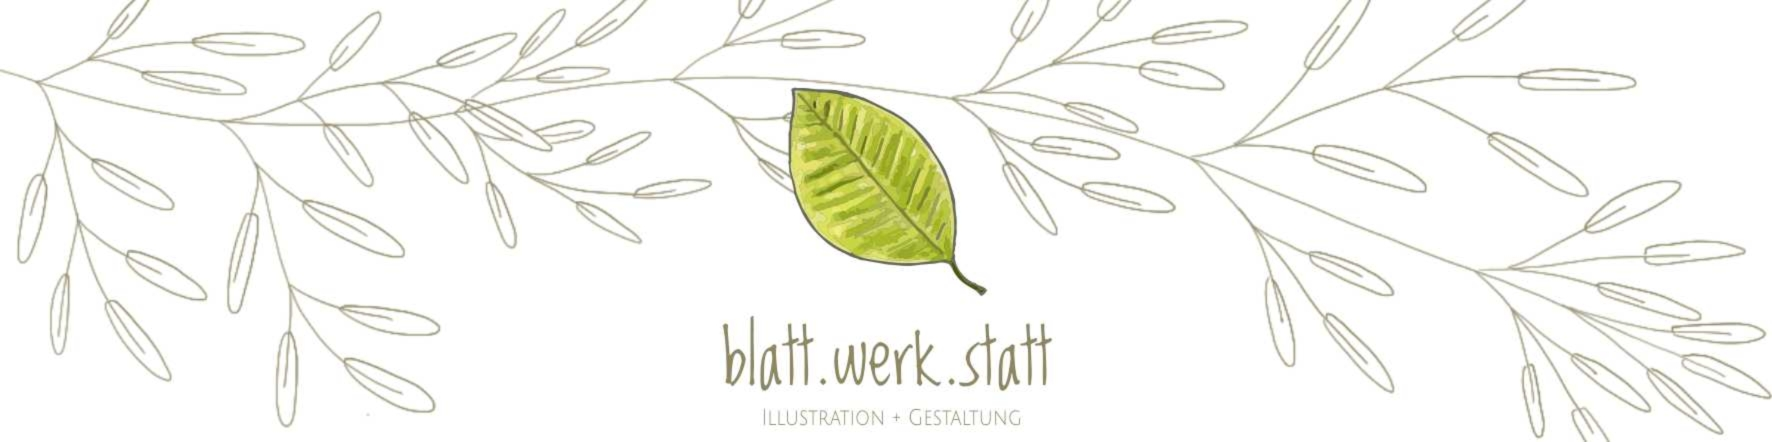 Showroom - blattwerkstatt